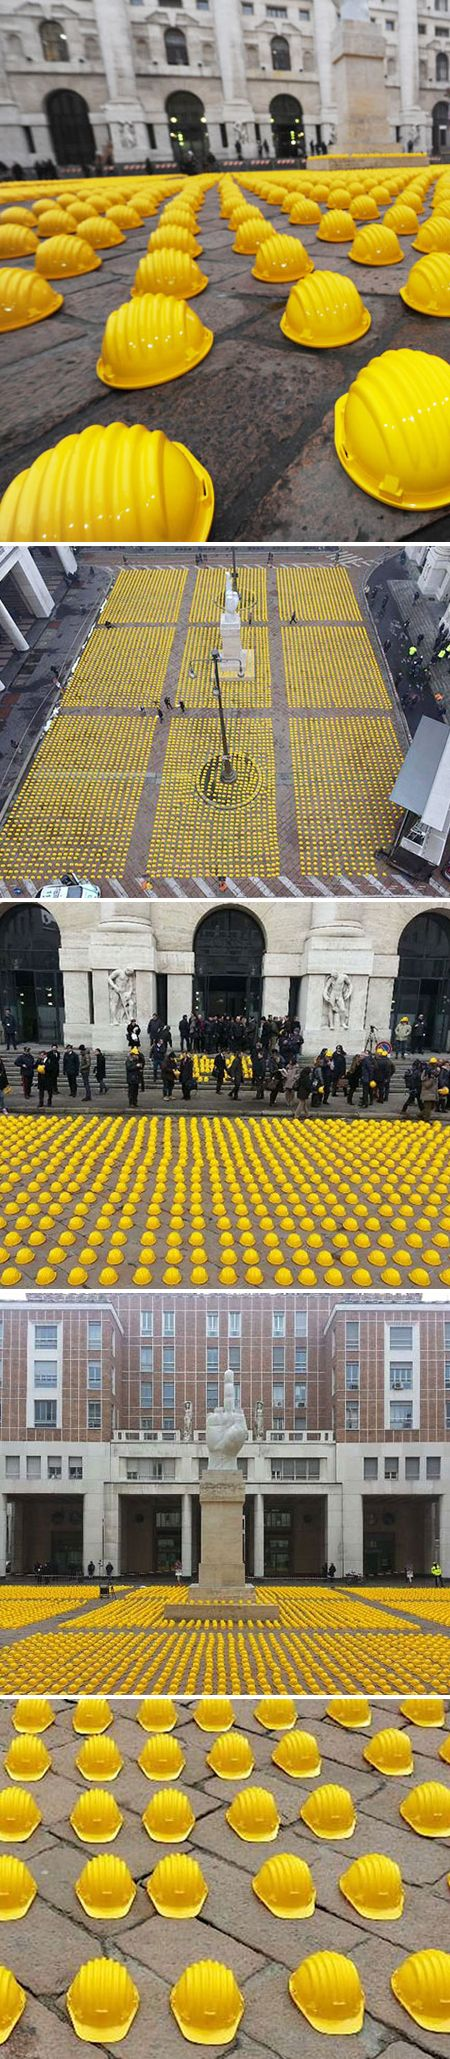 installation by construction workers at milan's stock exchange (happy labor day!)